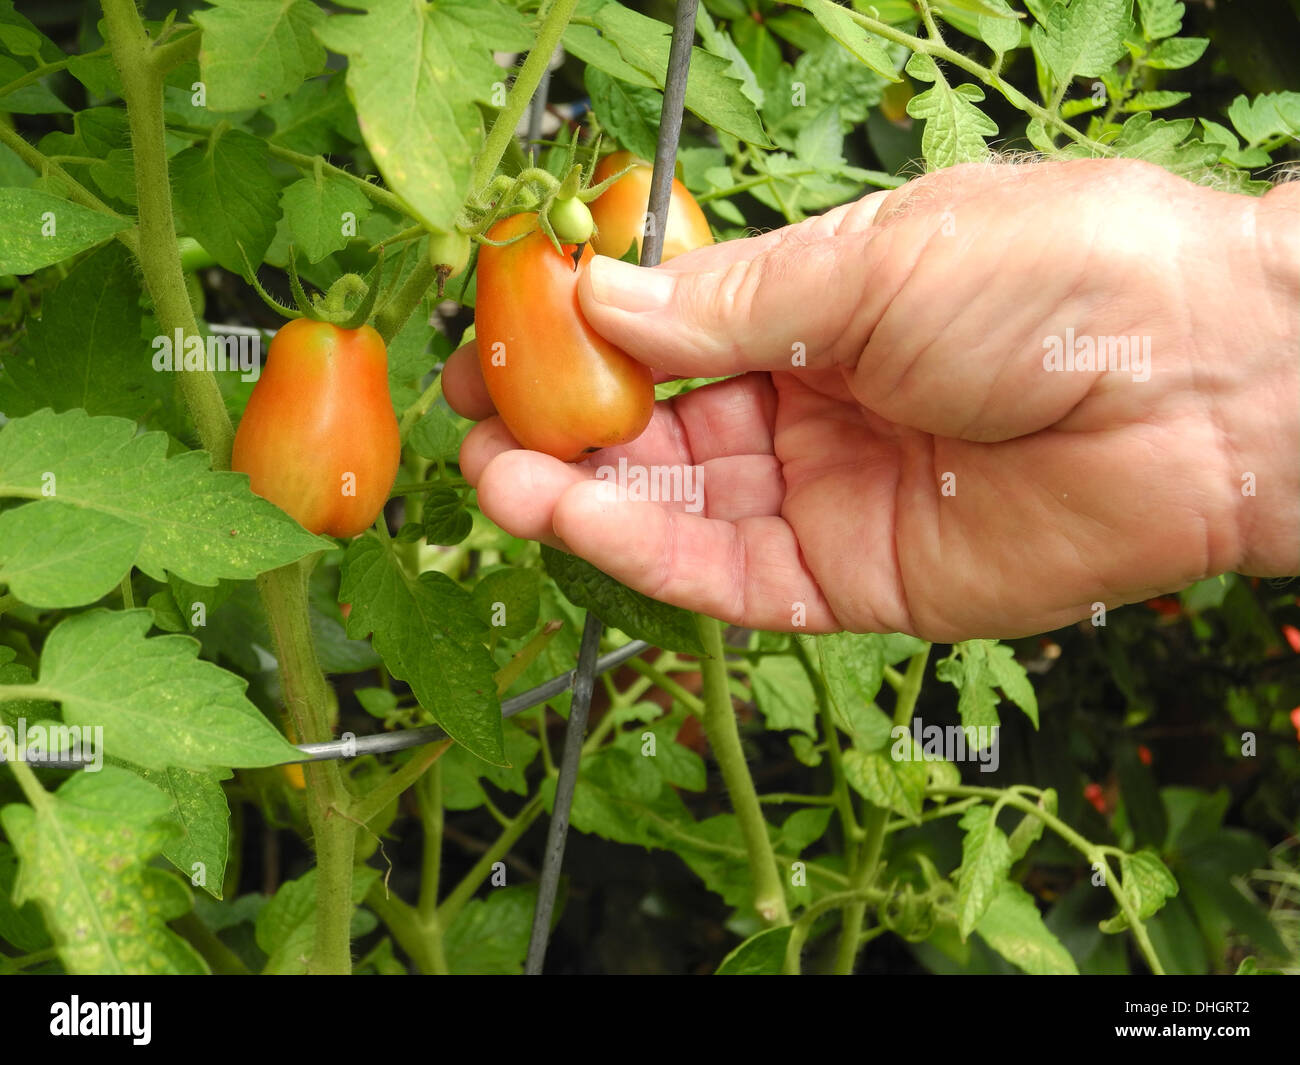 The retiree has plenty of time to tend to his organic garden. - Stock Image